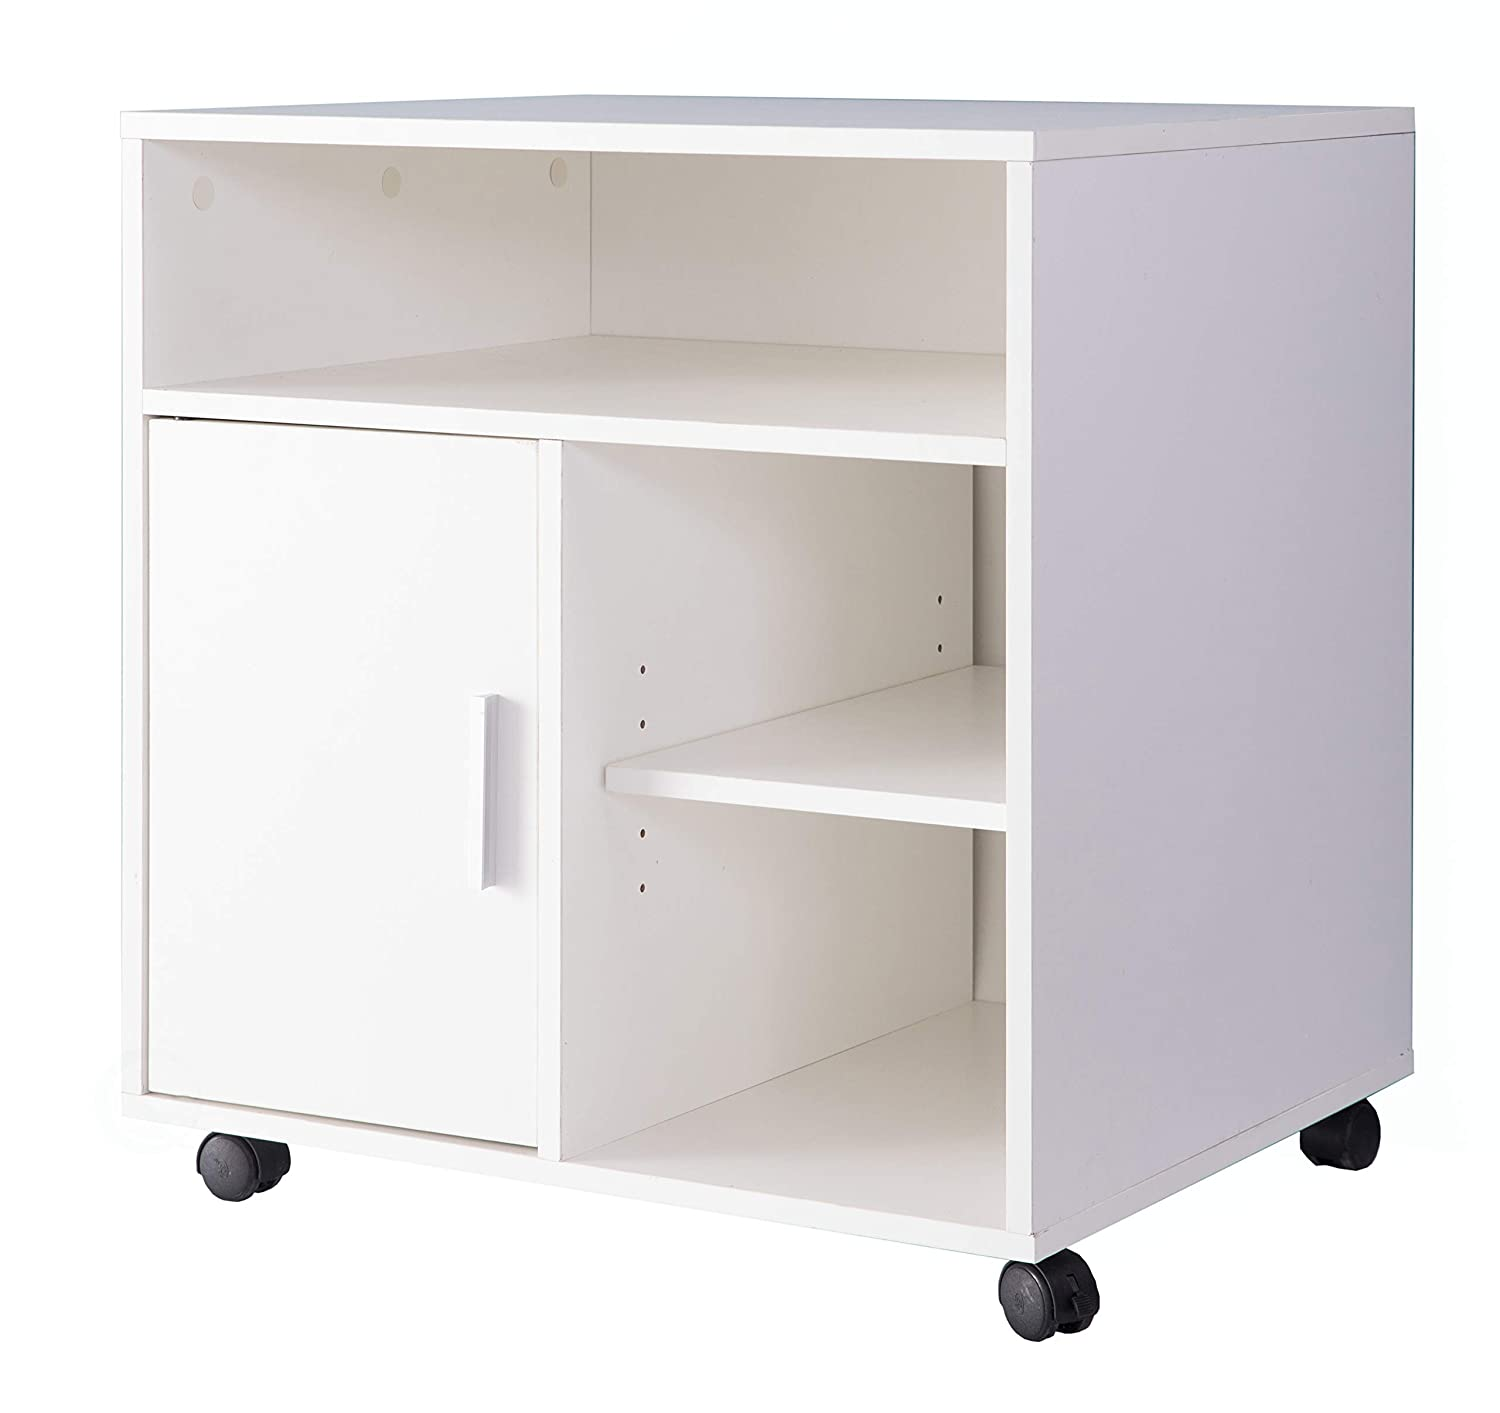 Printer Kitchen Office Storage Stand with Casters White